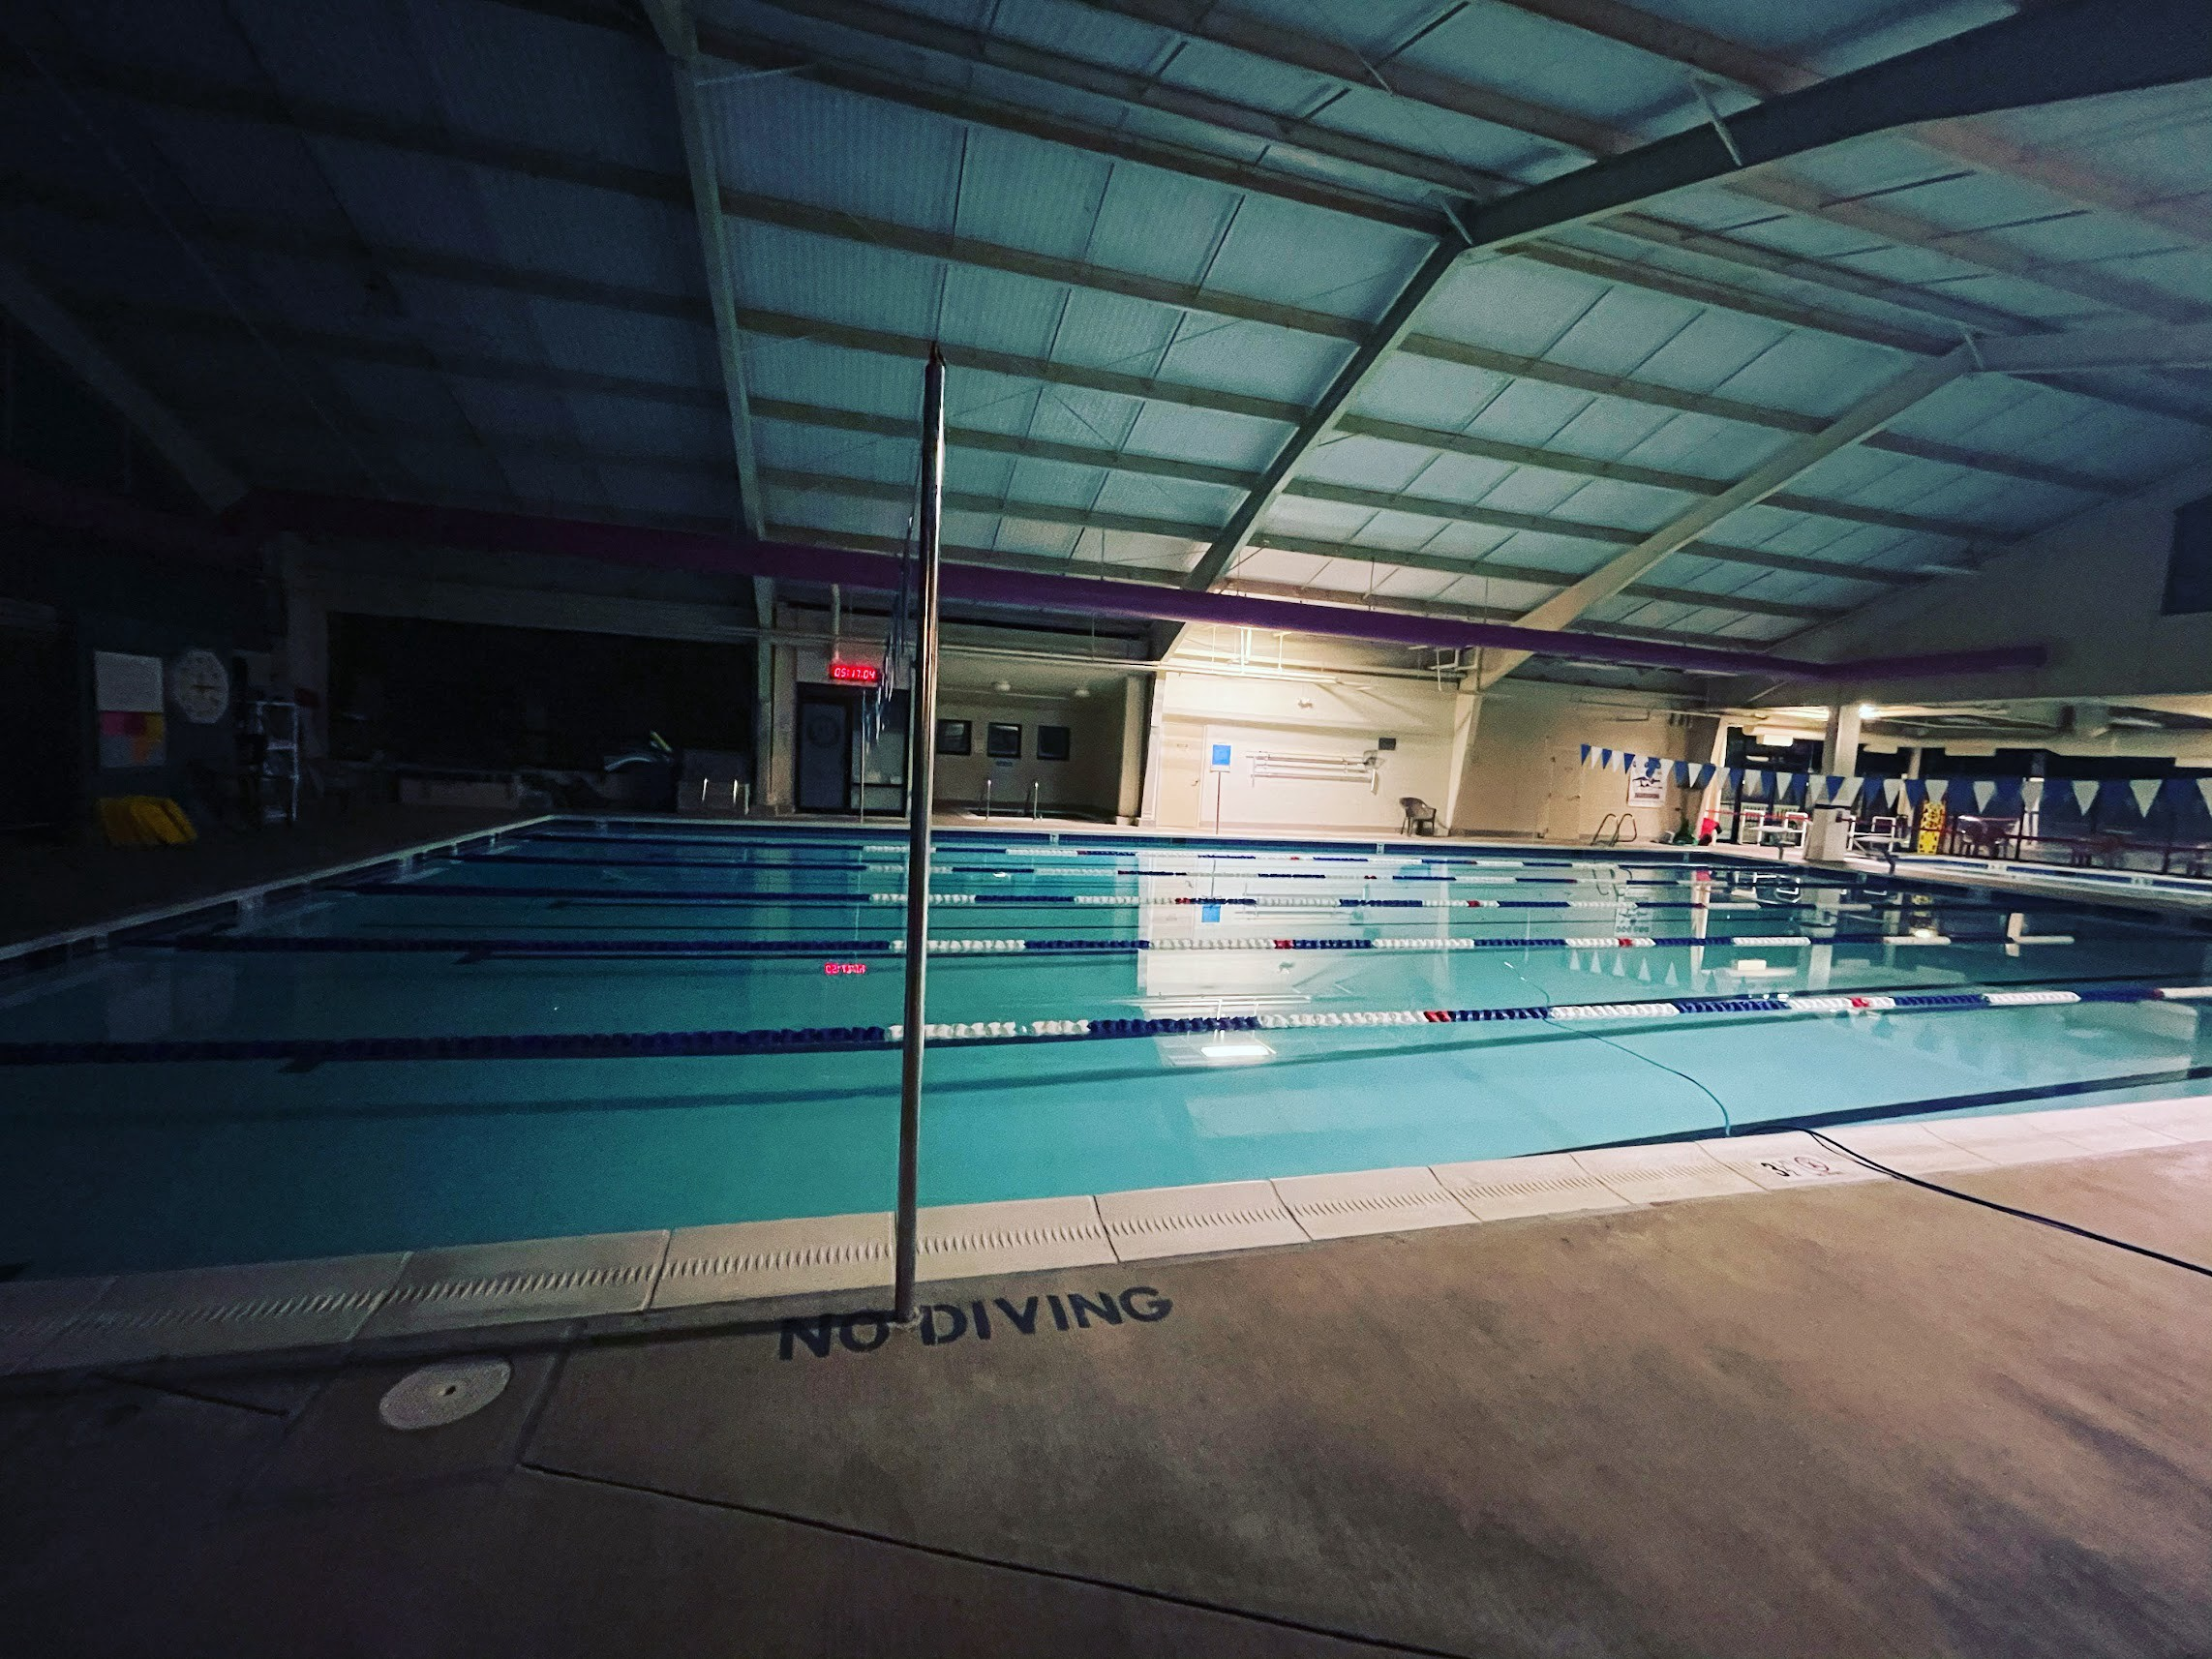 A swimming pool in the dark, with only low lighting. The swimming pool is divided into lanes for lap swimming.